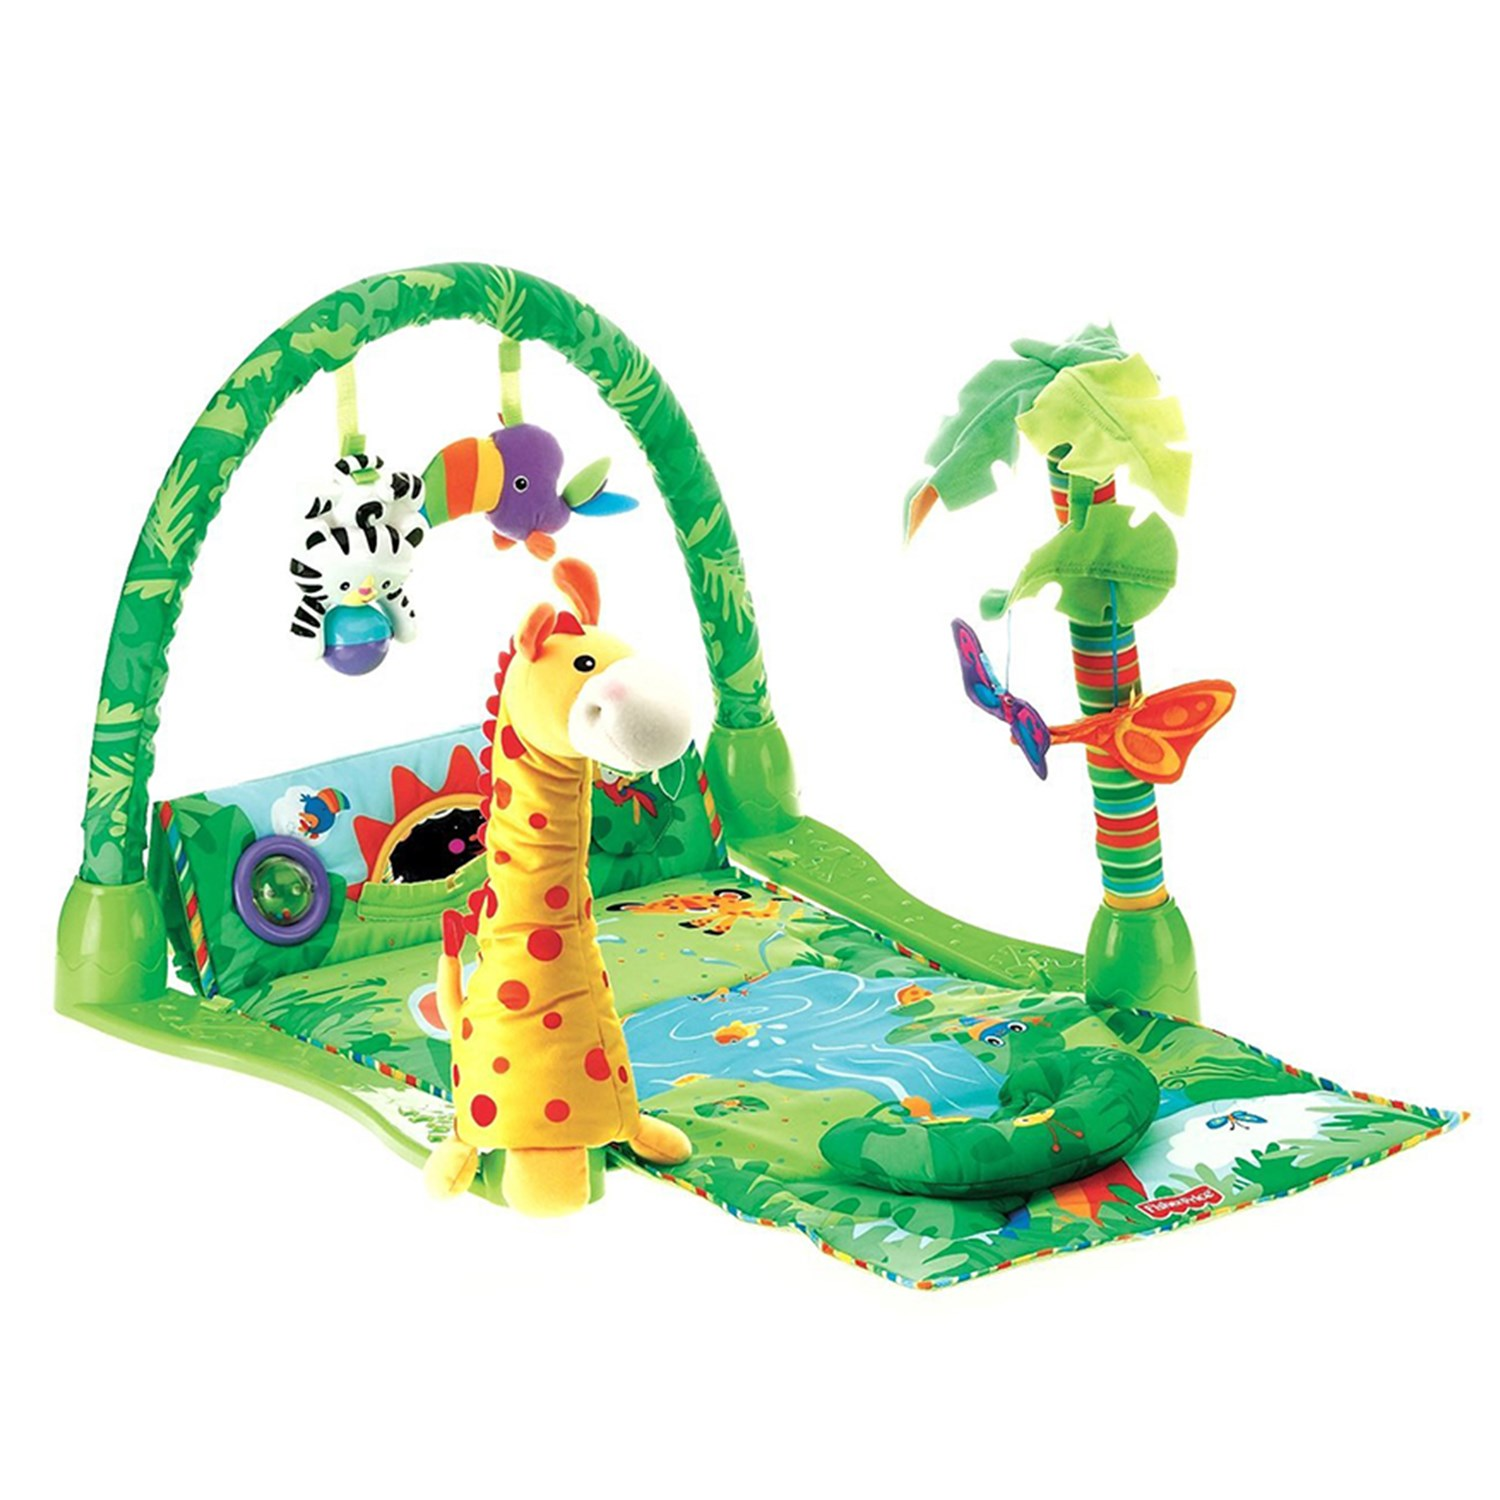 Fisher Price L1664 Rainforest 1-2-3 Gym